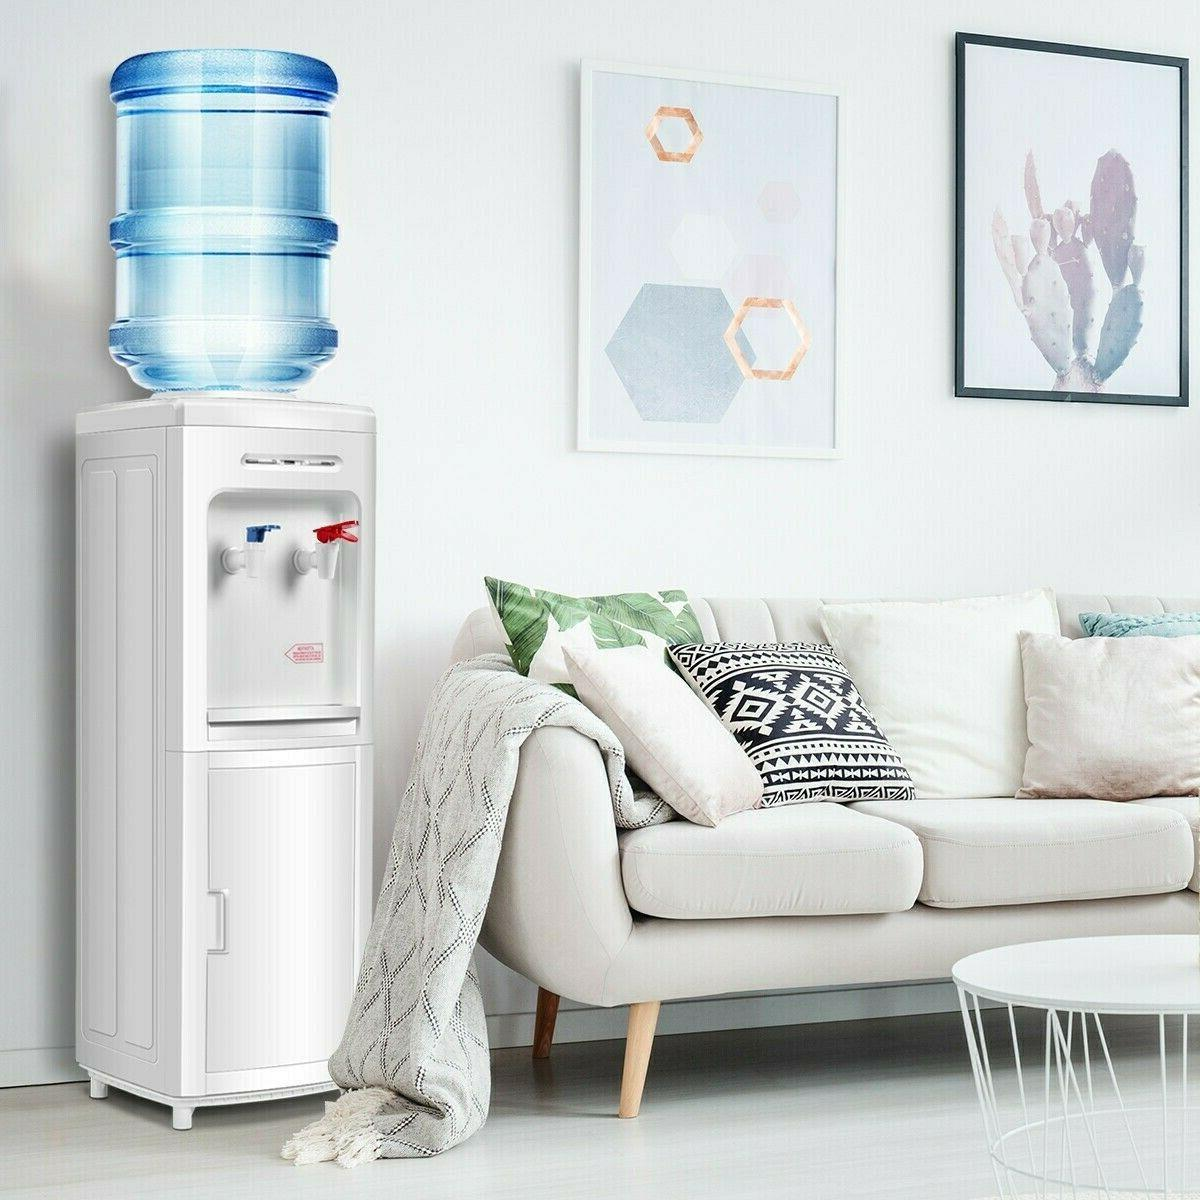 Top Loading Water Cooler Dispenser Freestanding with Storage